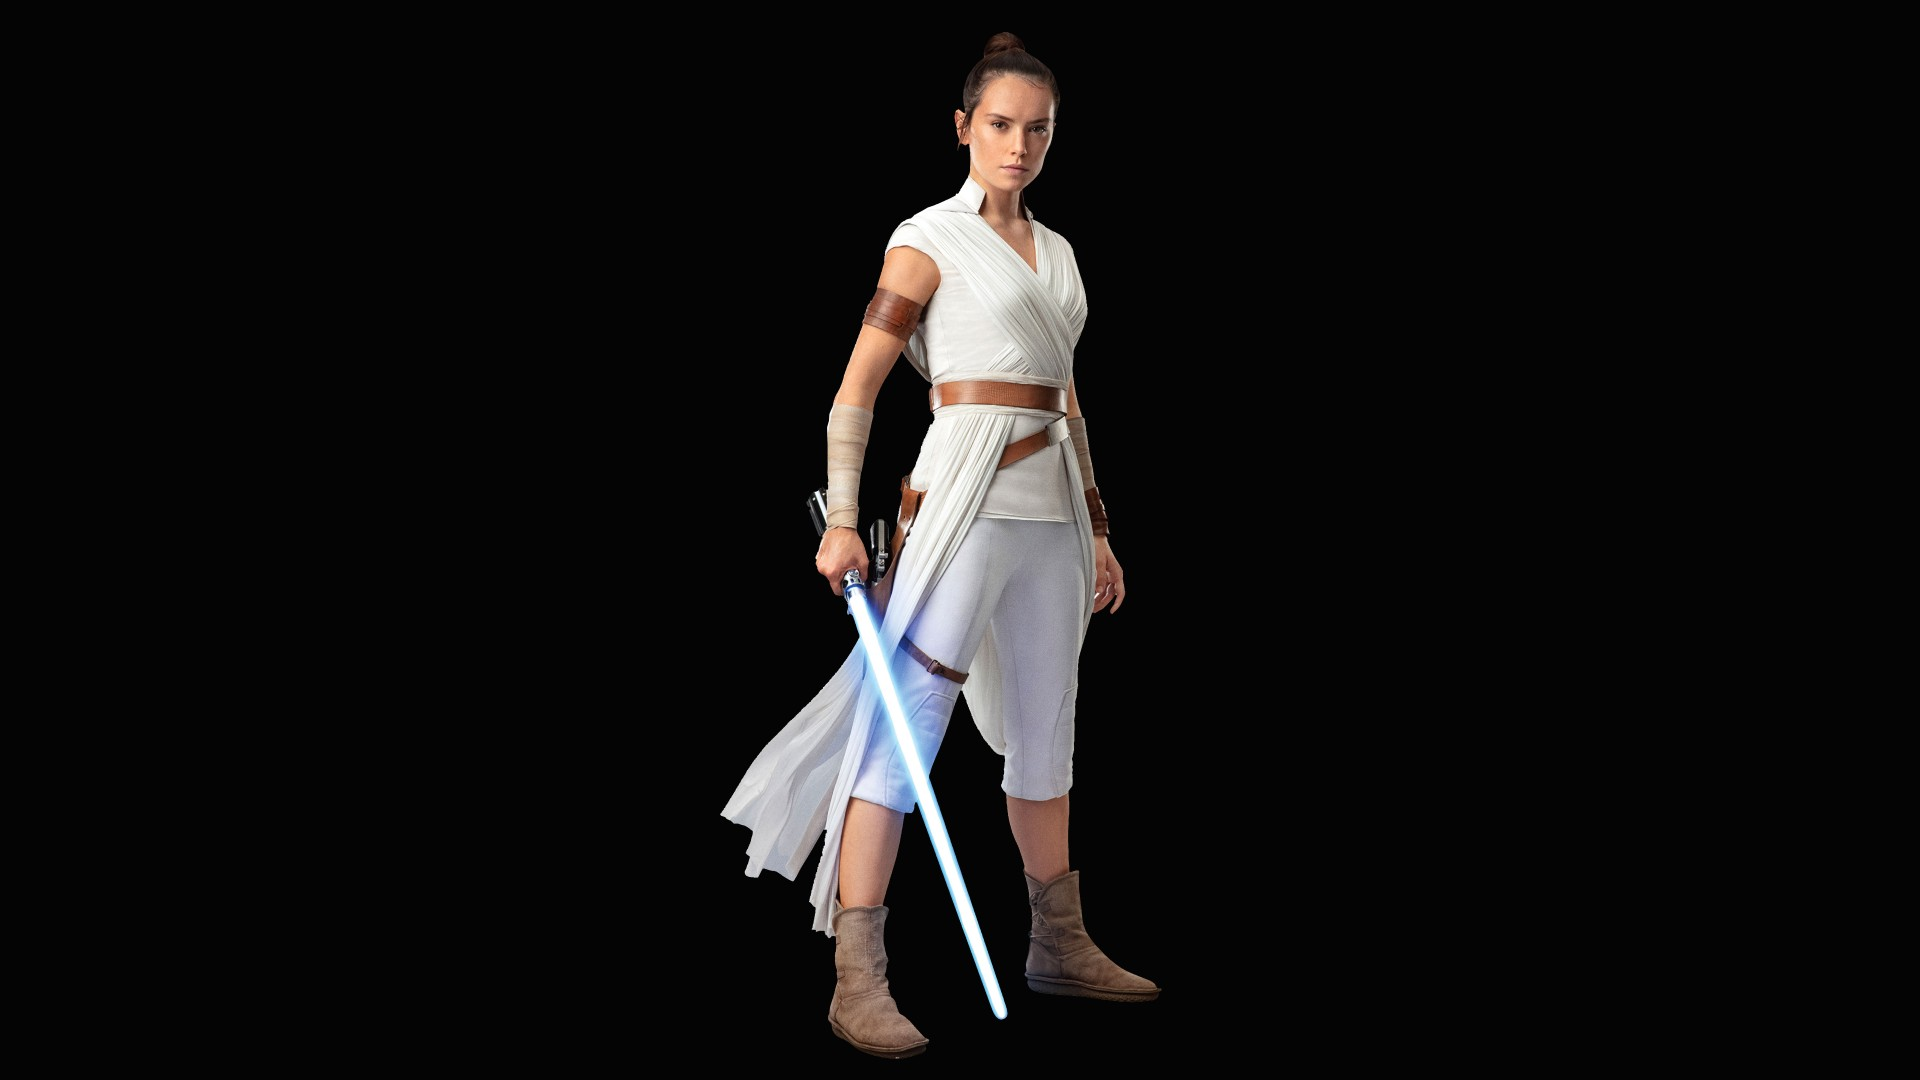 Rey Daisy Ridley In Star Wars The Rise Of Skywalker